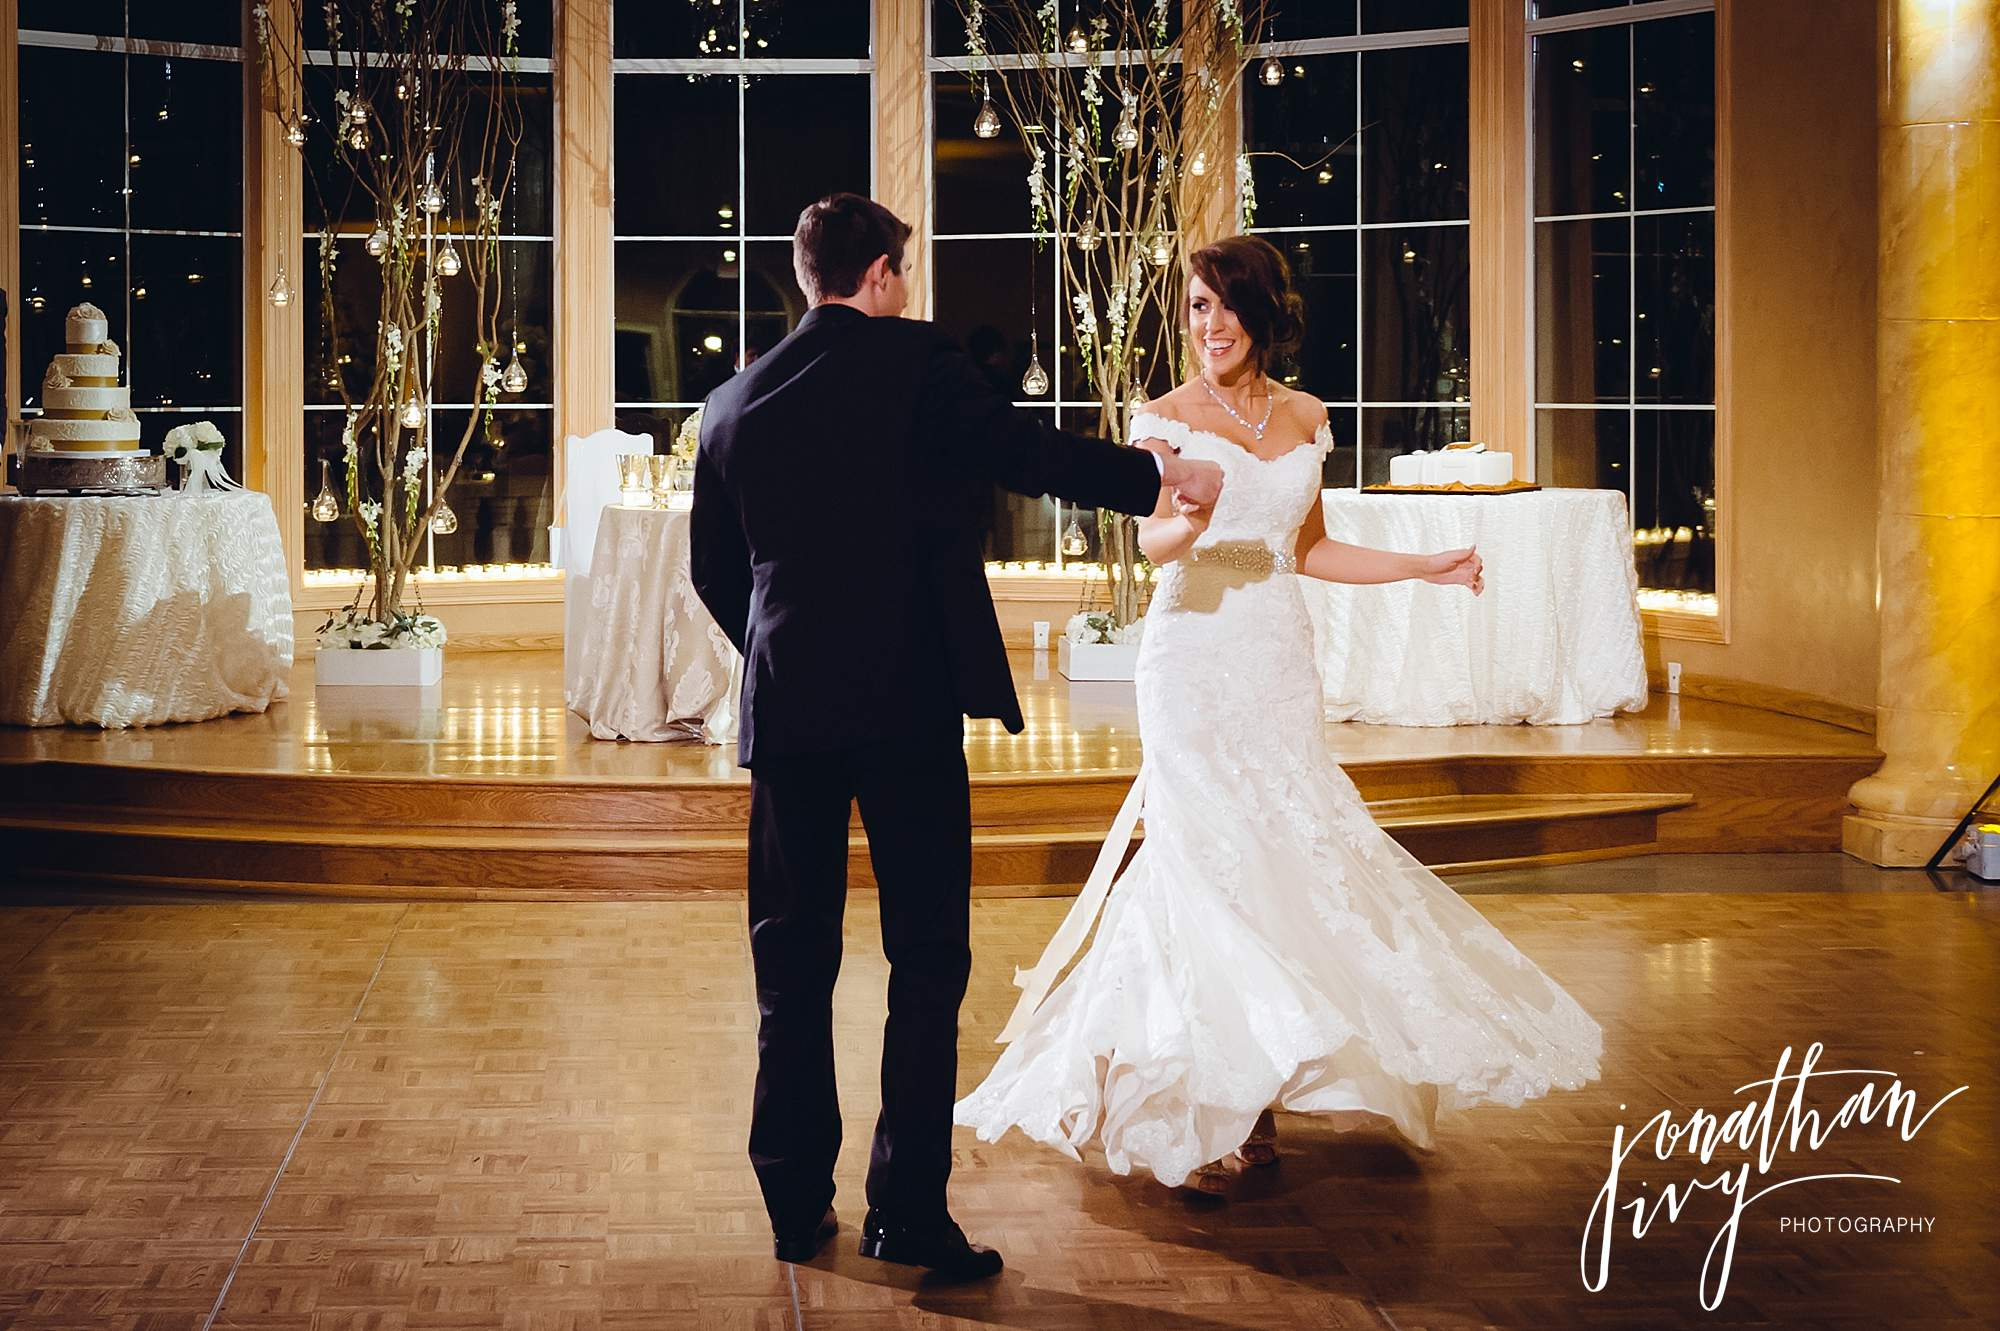 chateau polonez first dance bride groom